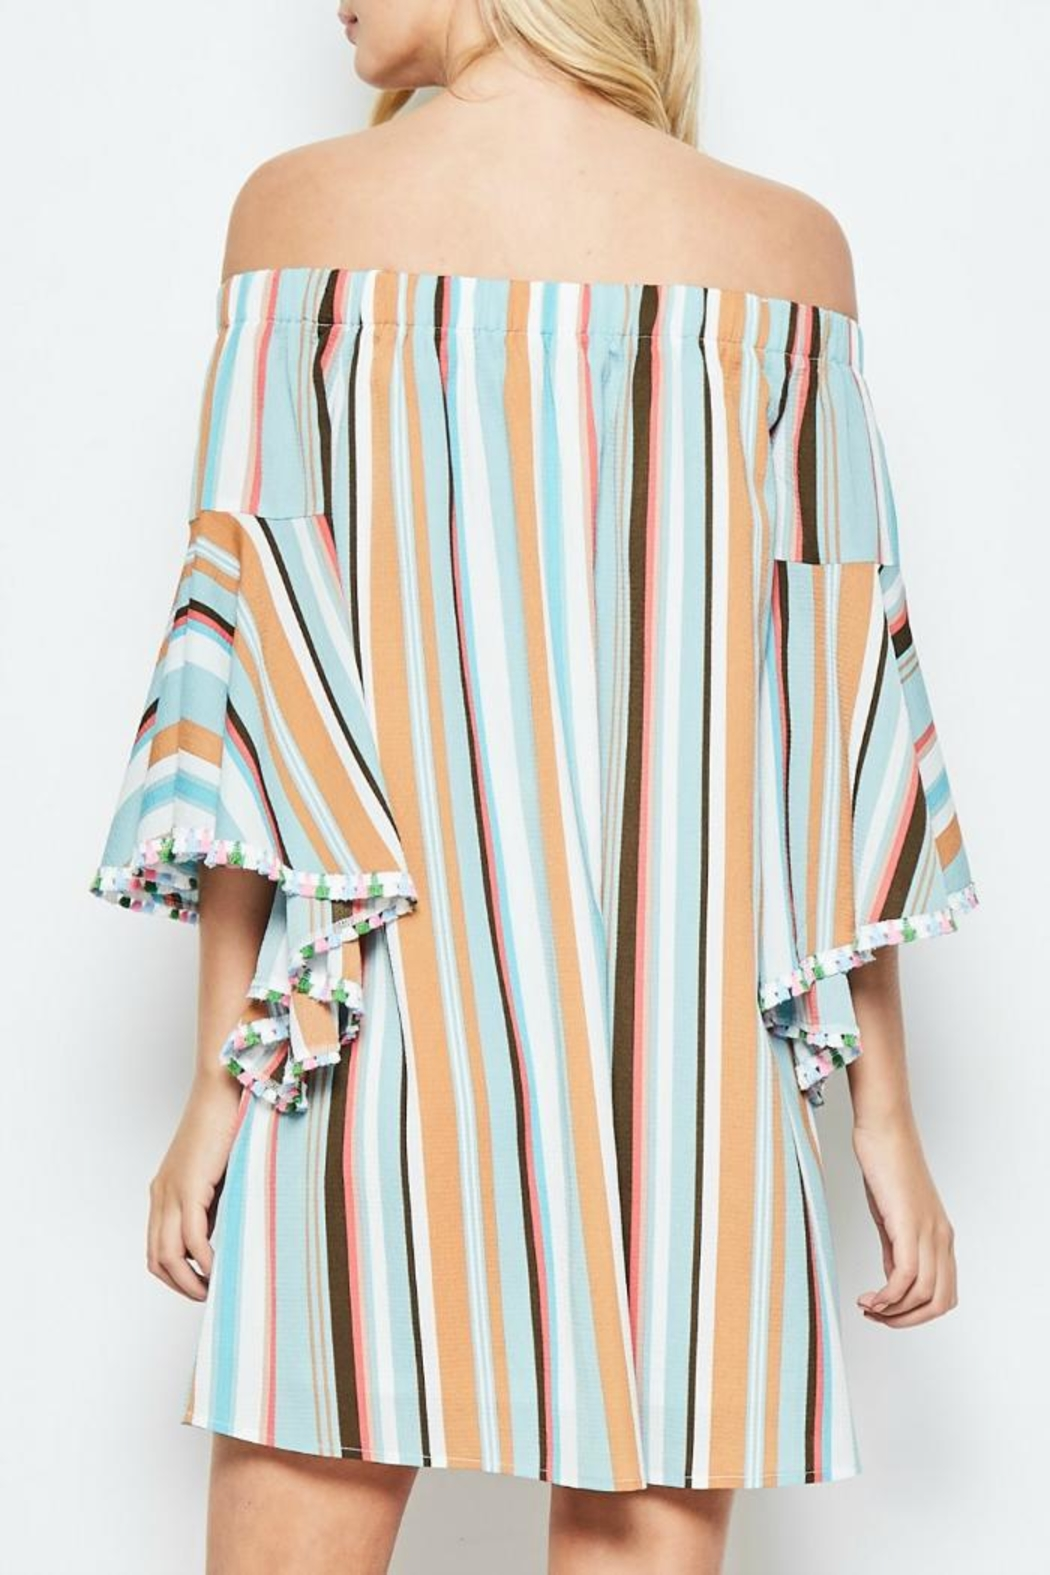 Andree by Unit Vacation Off-The-Shoulder Dress - Side Cropped Image